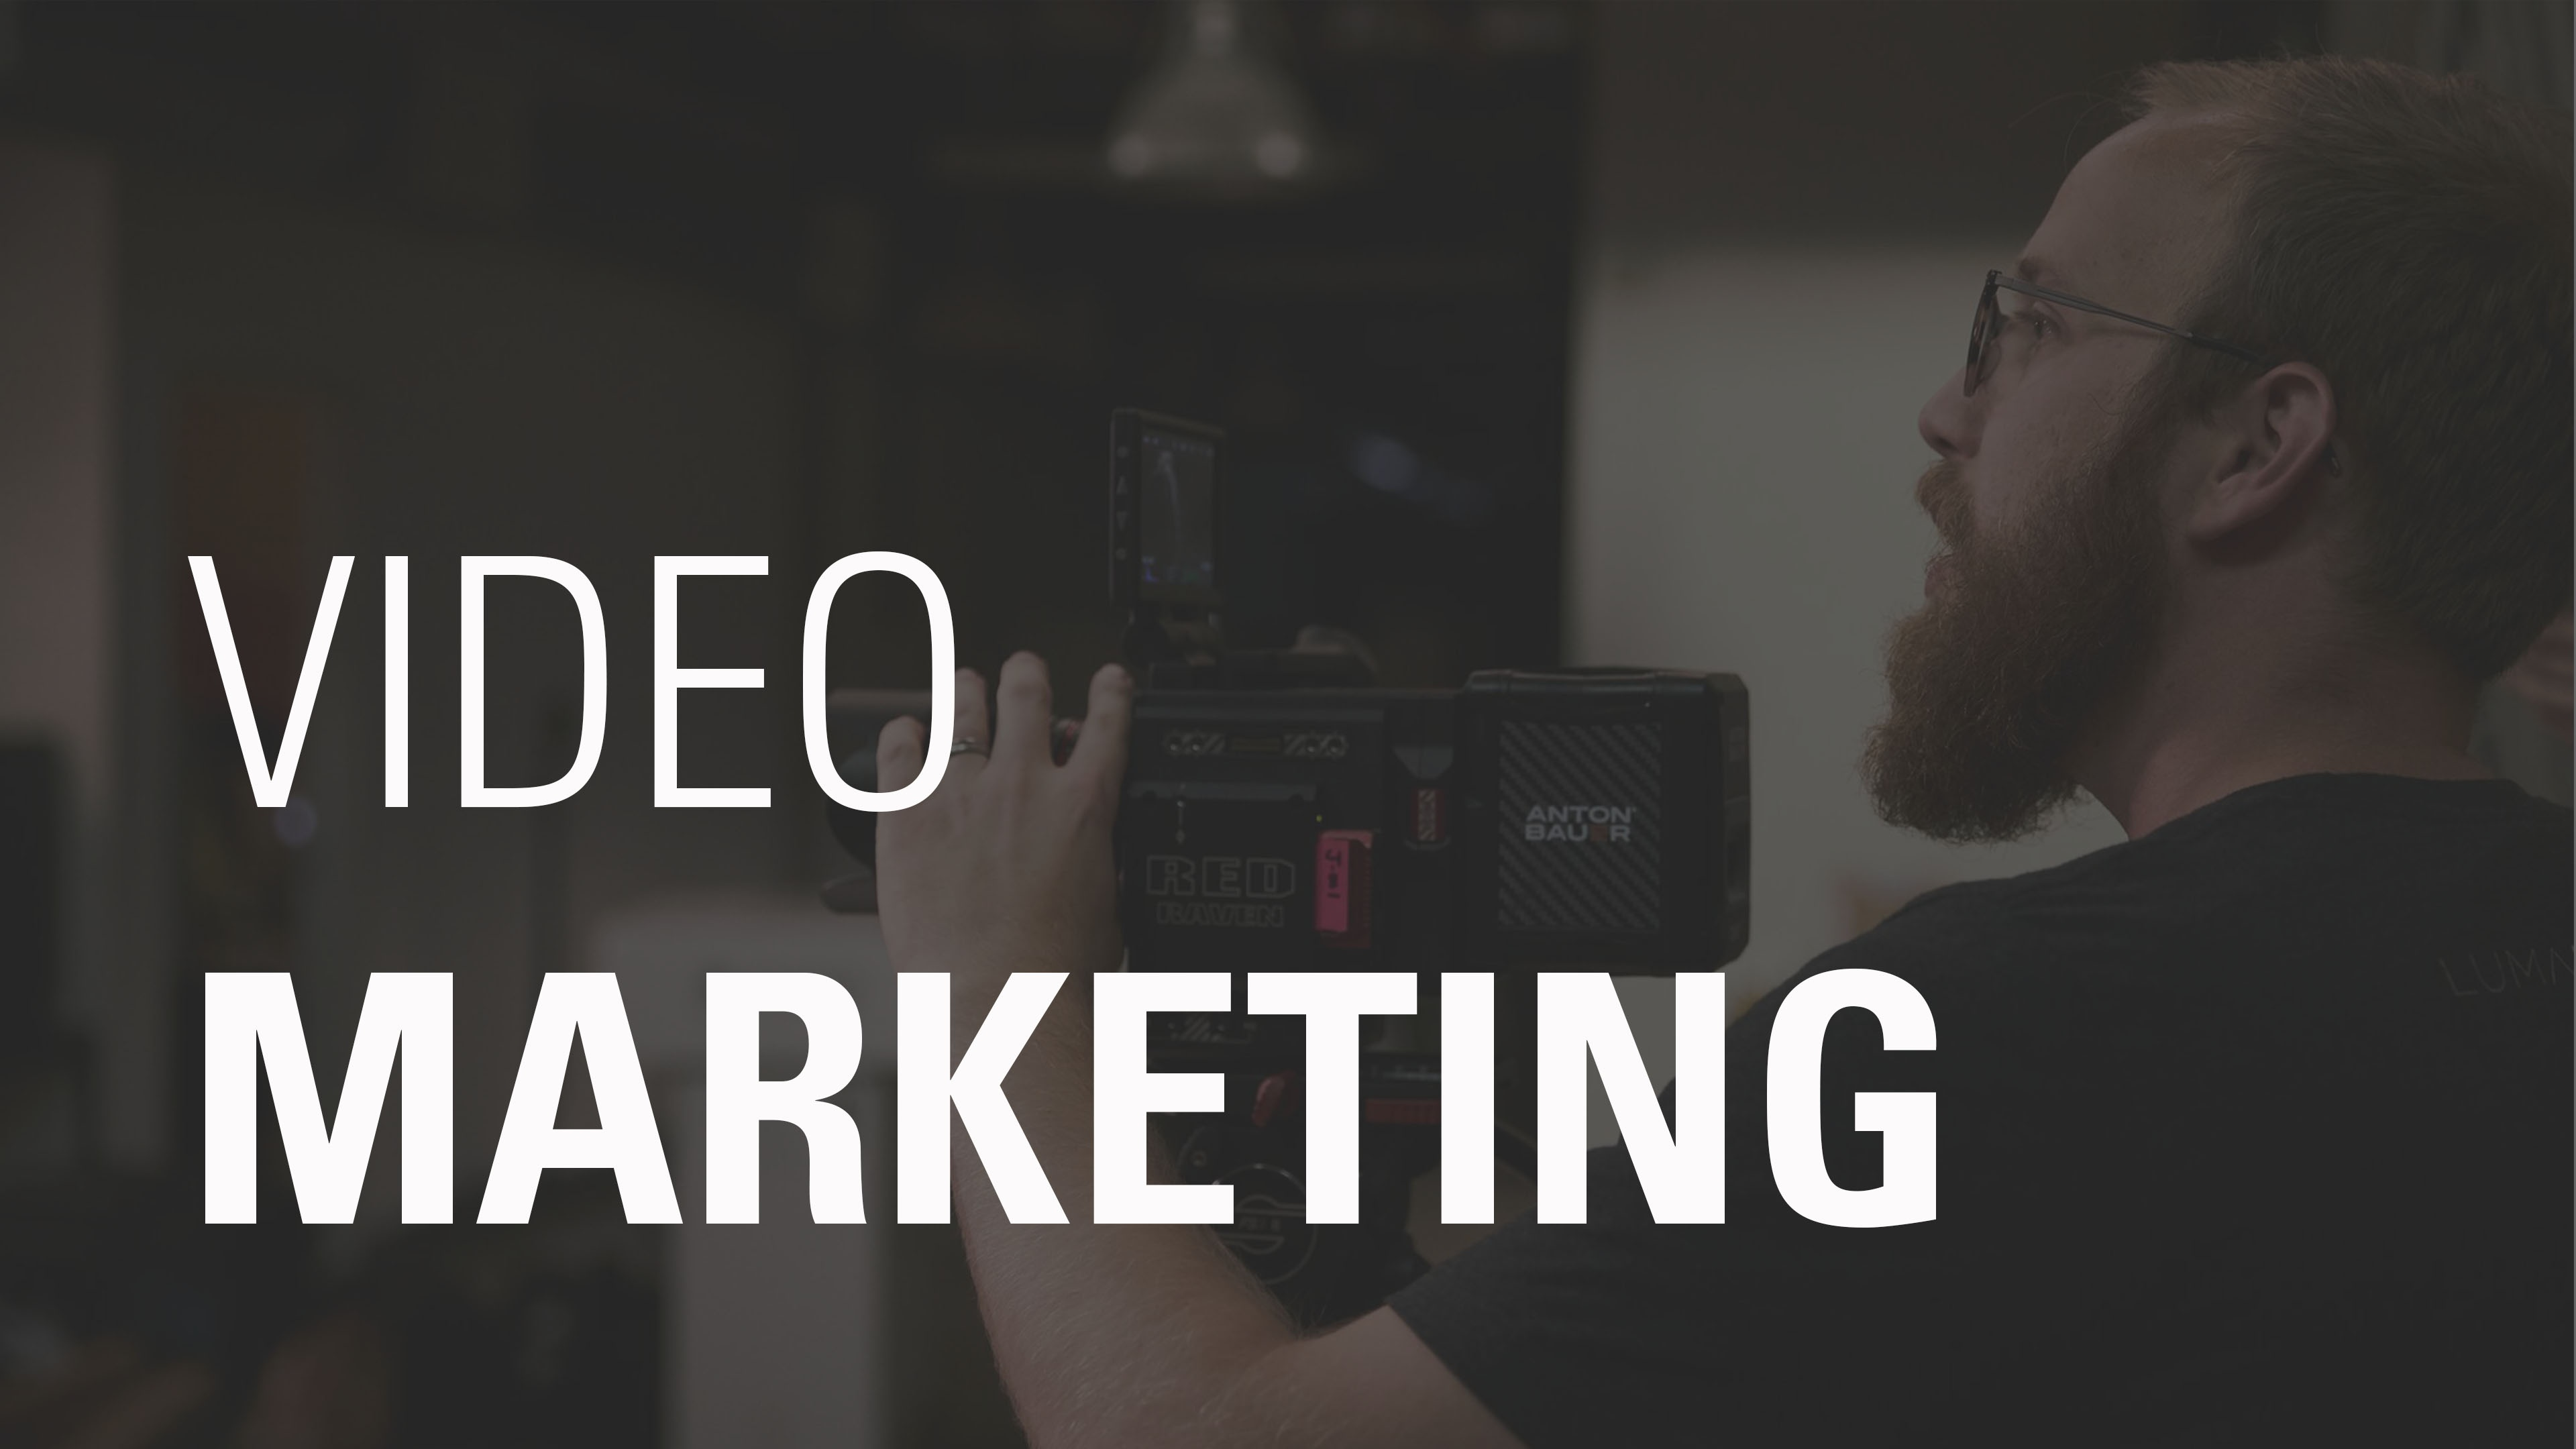 Video Marketing Artboard 1 copy